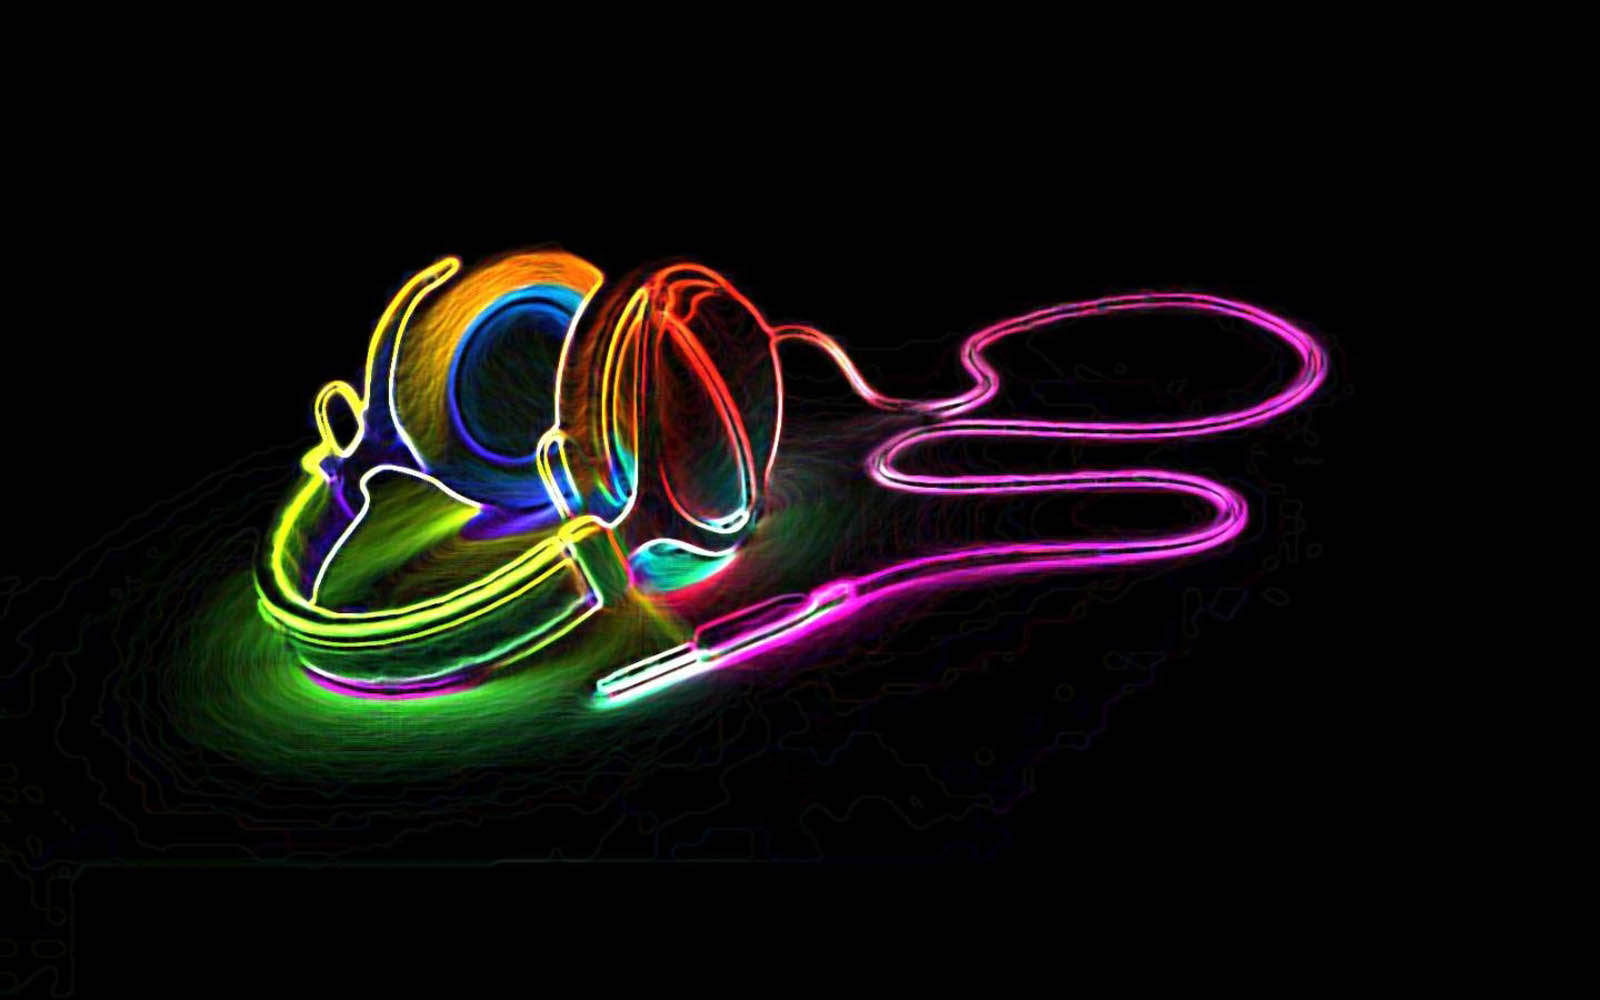 Keywords Neon Art Wallpapers Neon Art Desktop Wallpapers Neon Art 1600x1000